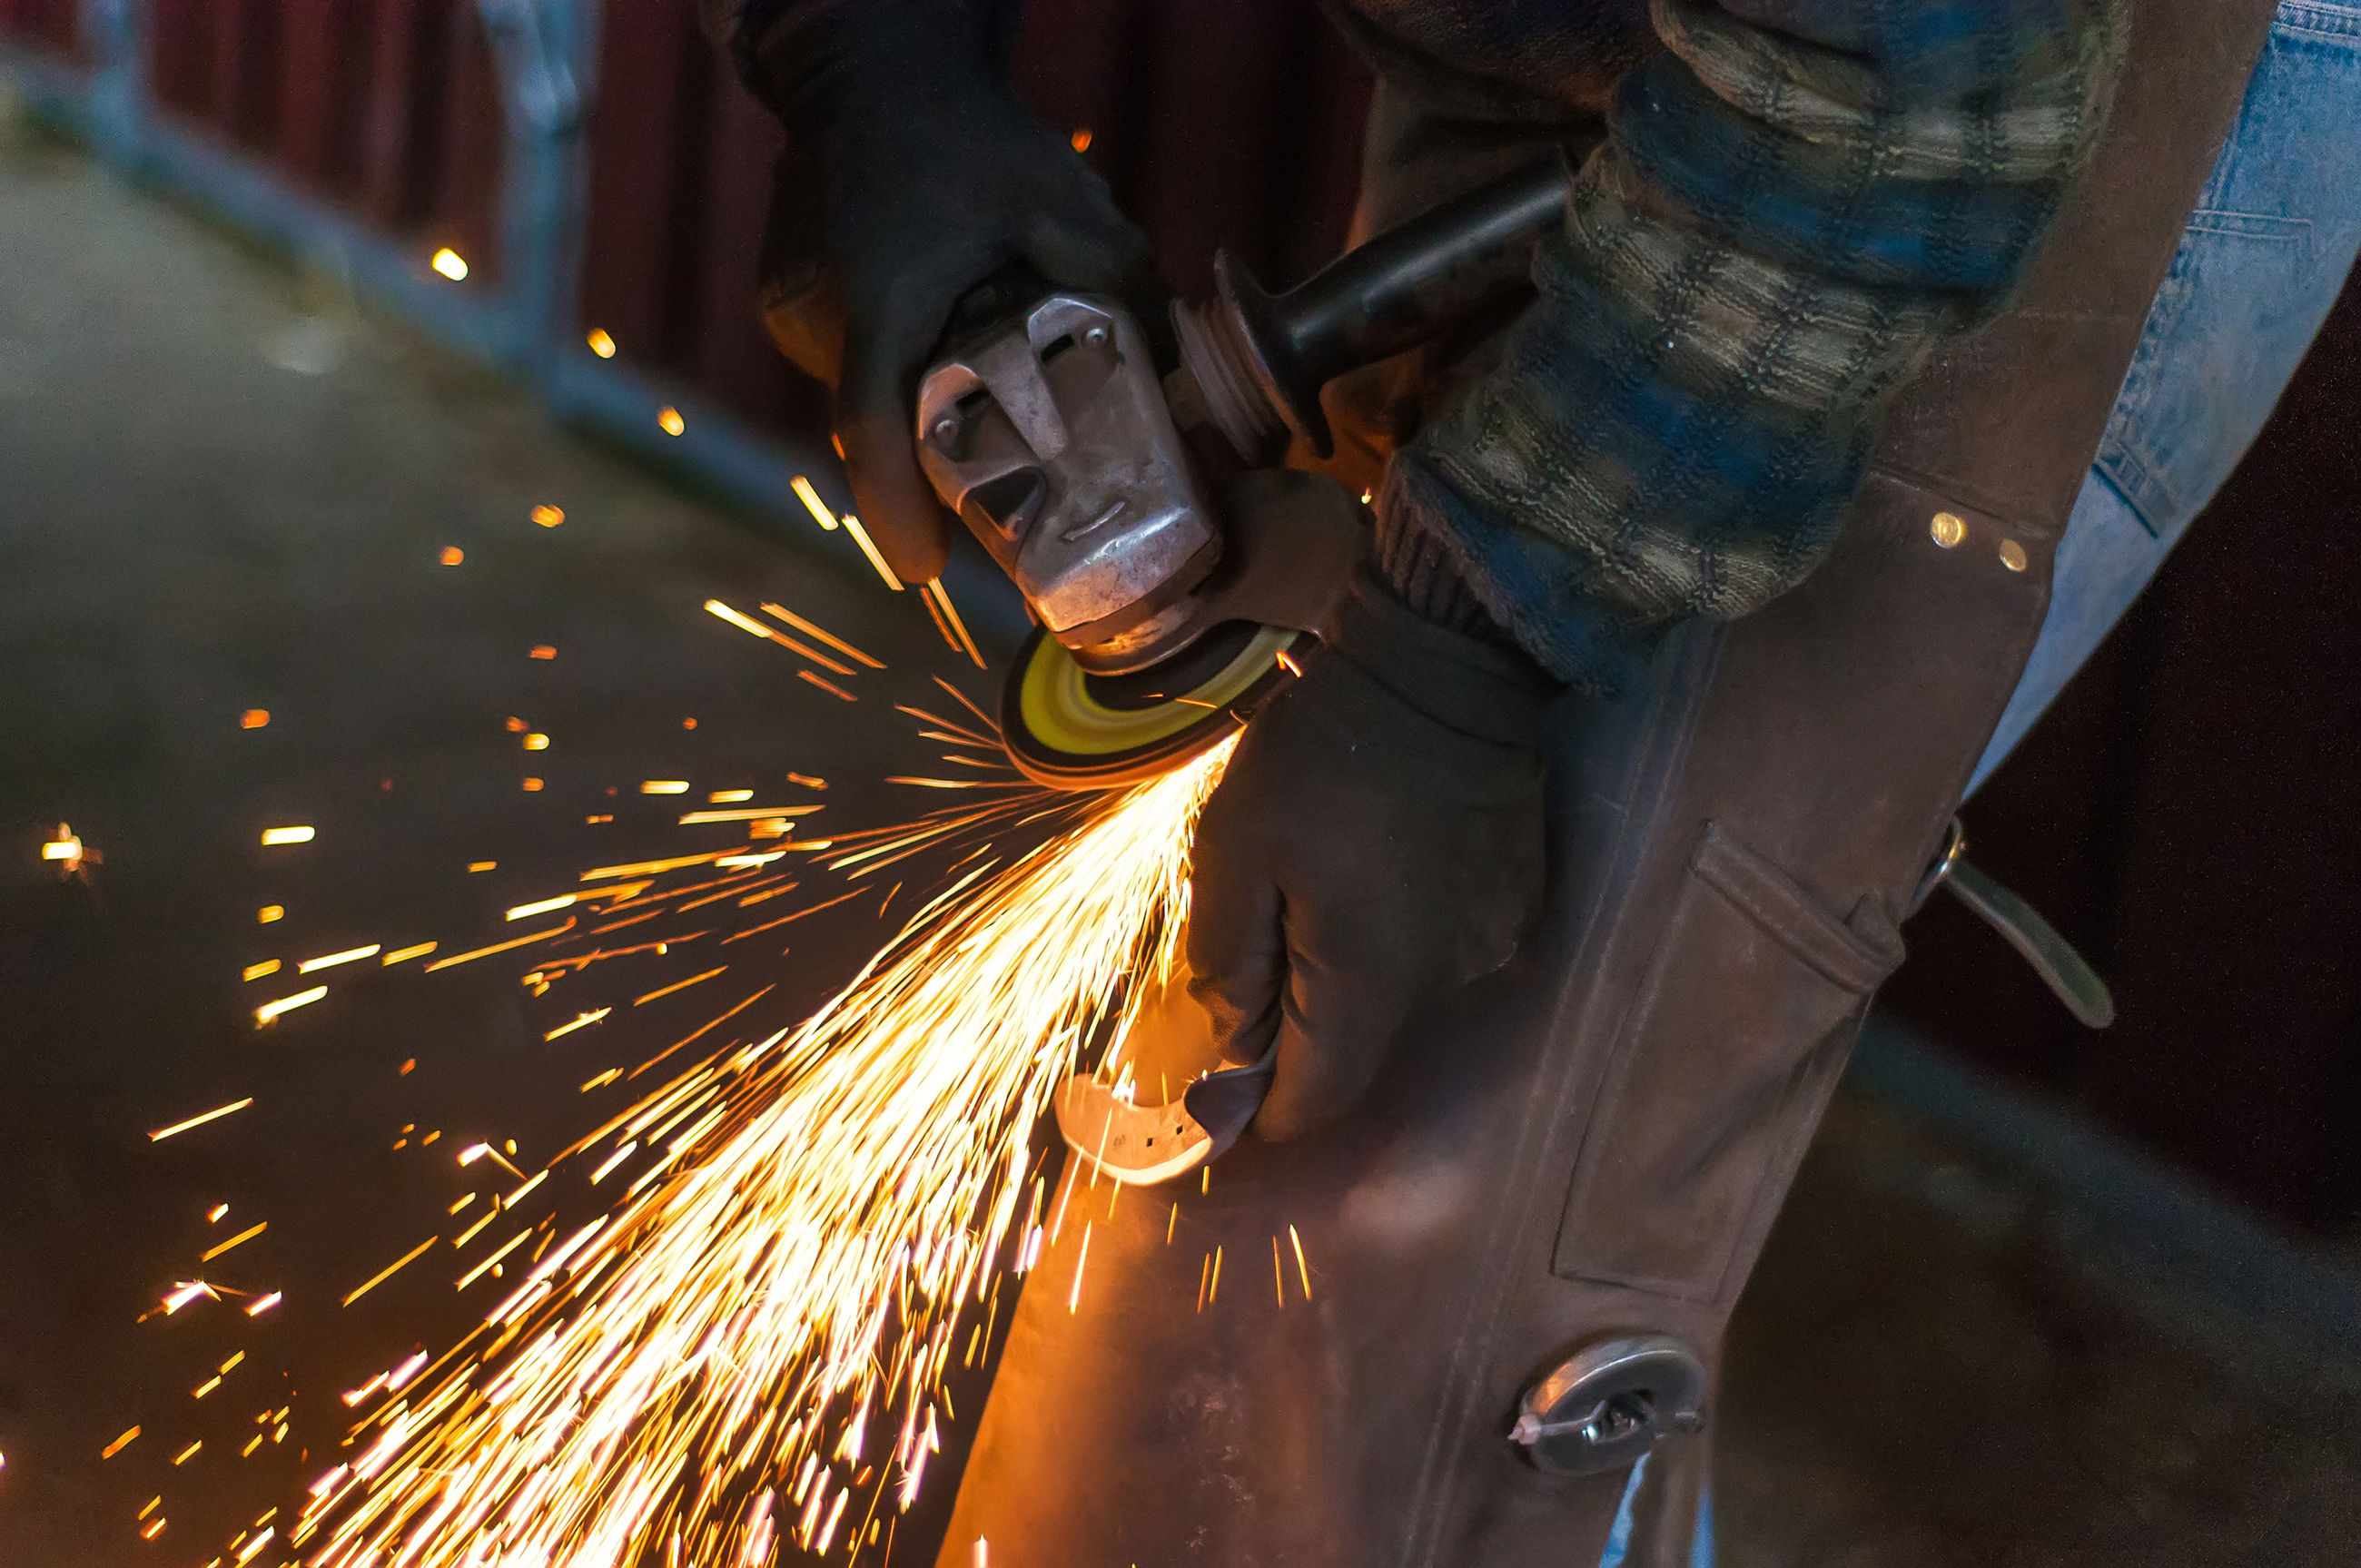 Midsection of worker grinding metal in industry